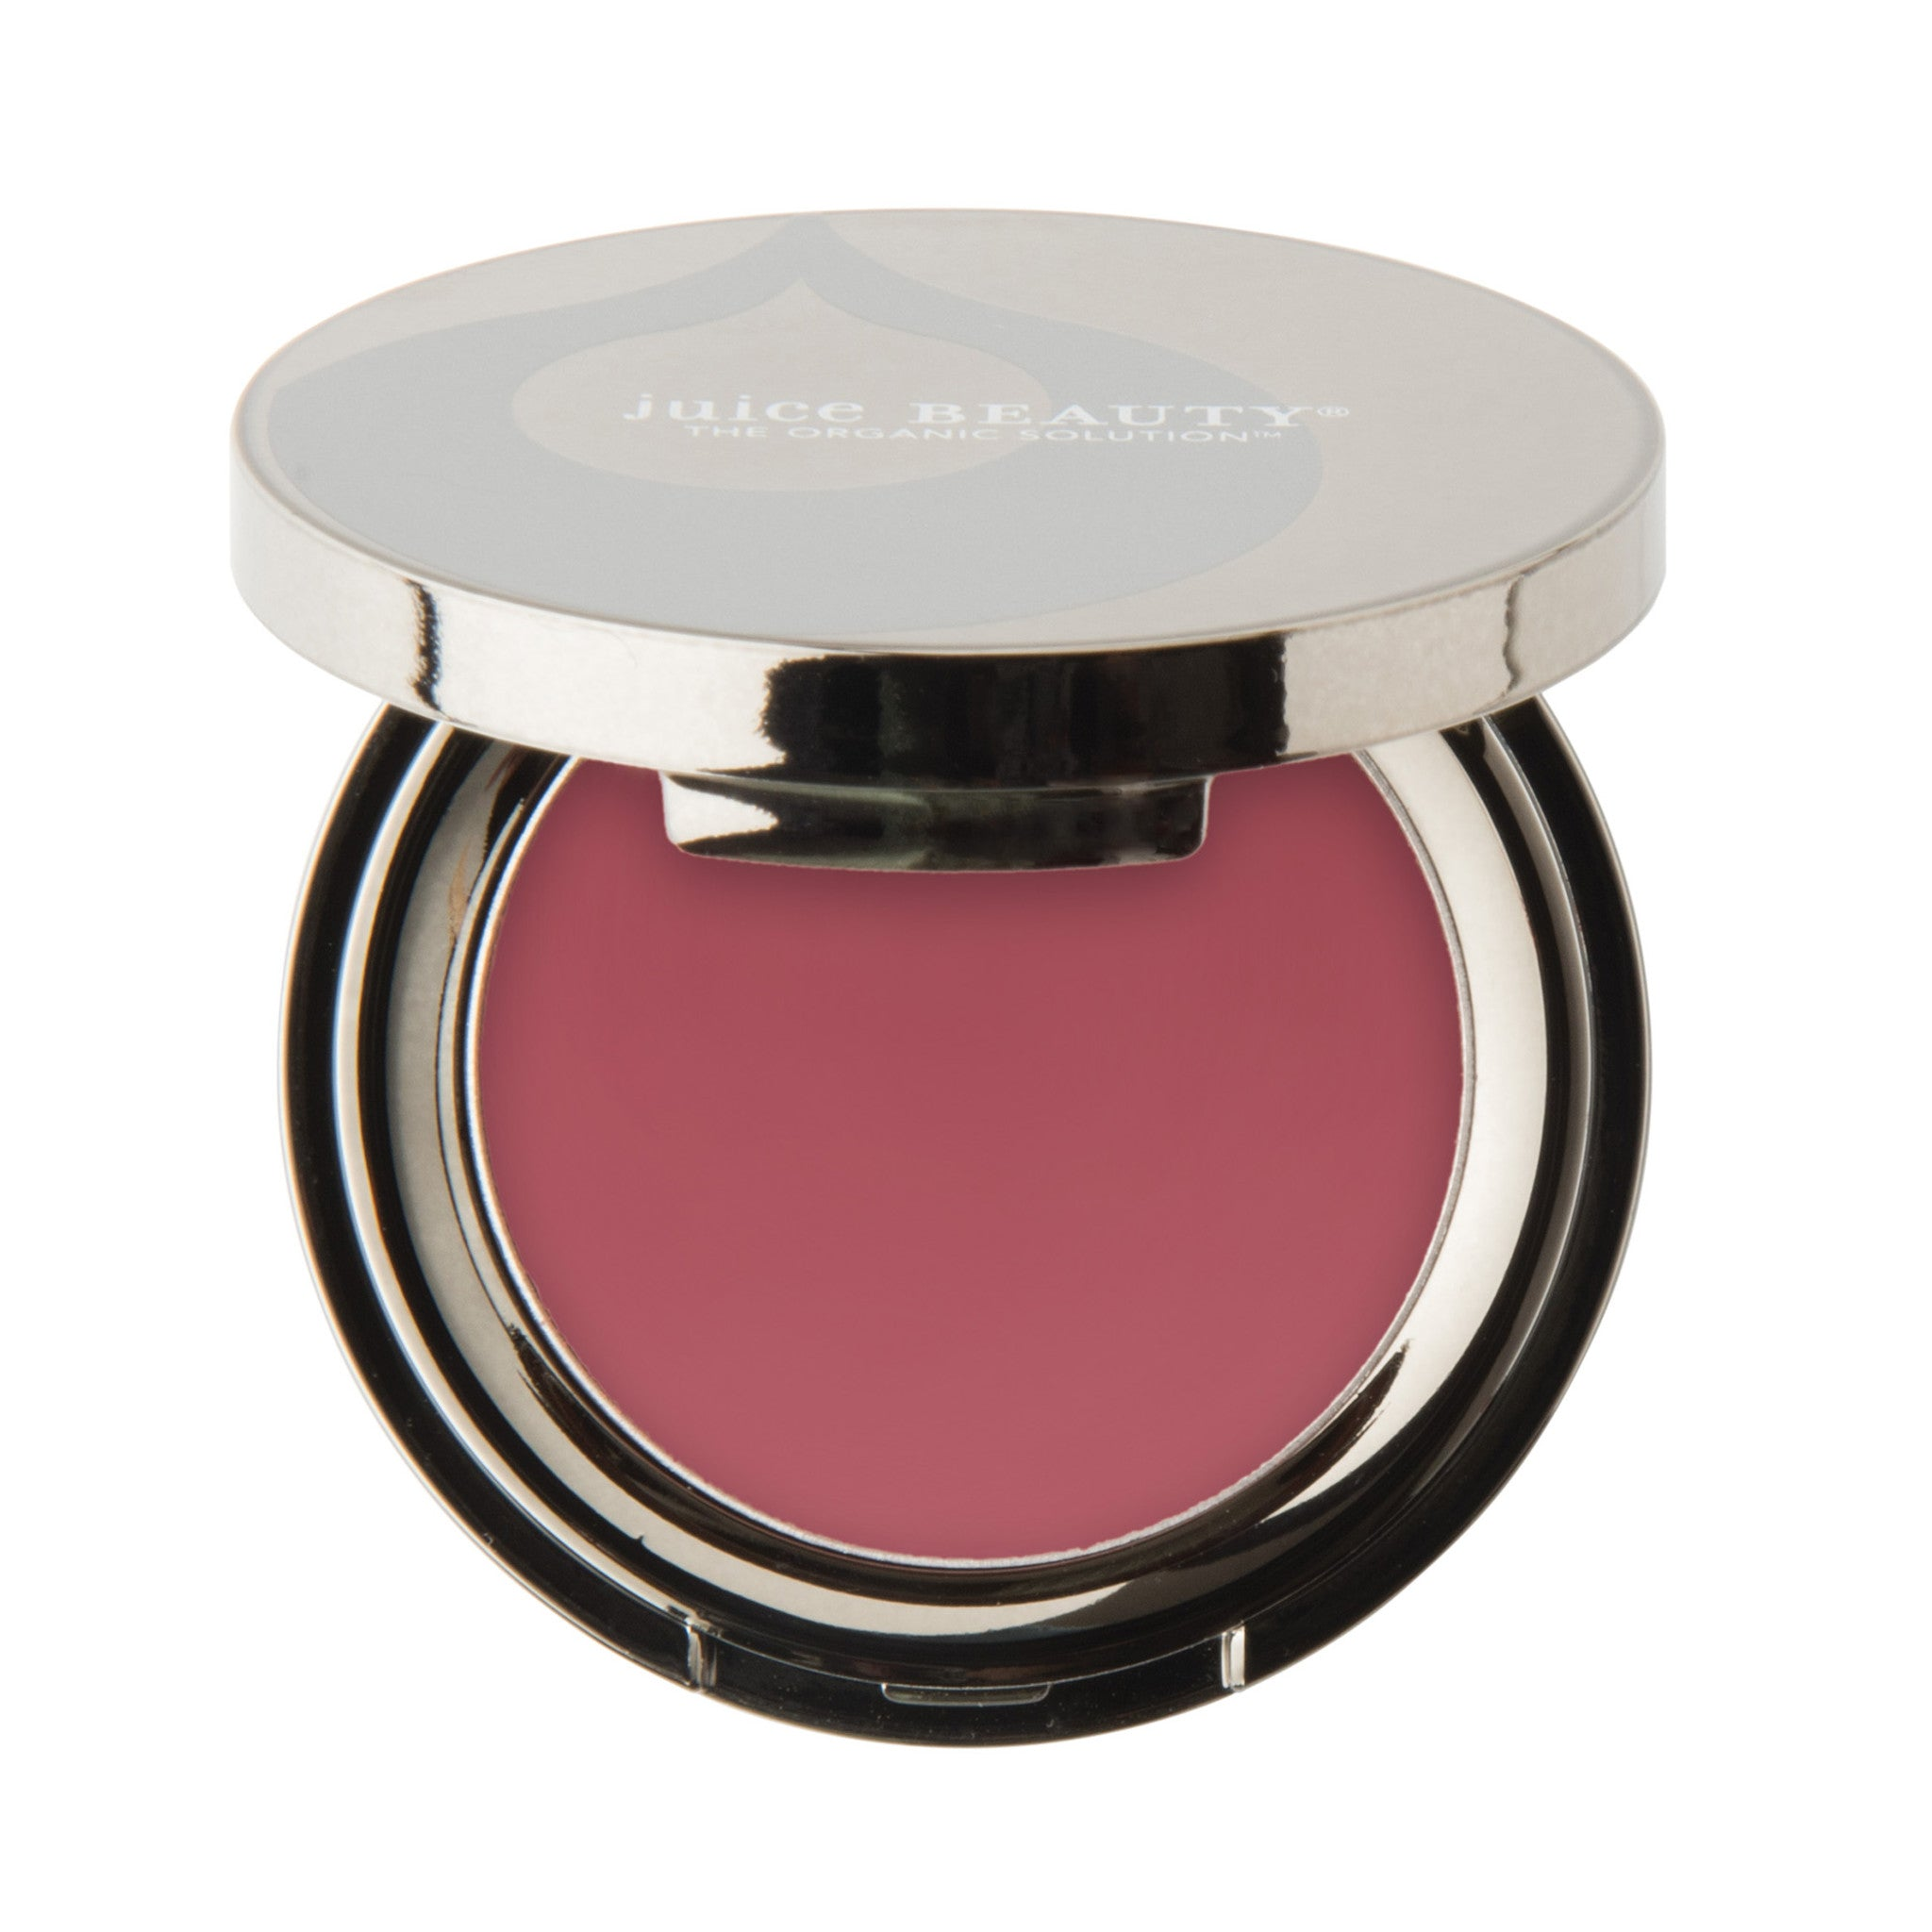 PHYTO-PIGMENTS™ Last Looks Cream Blush